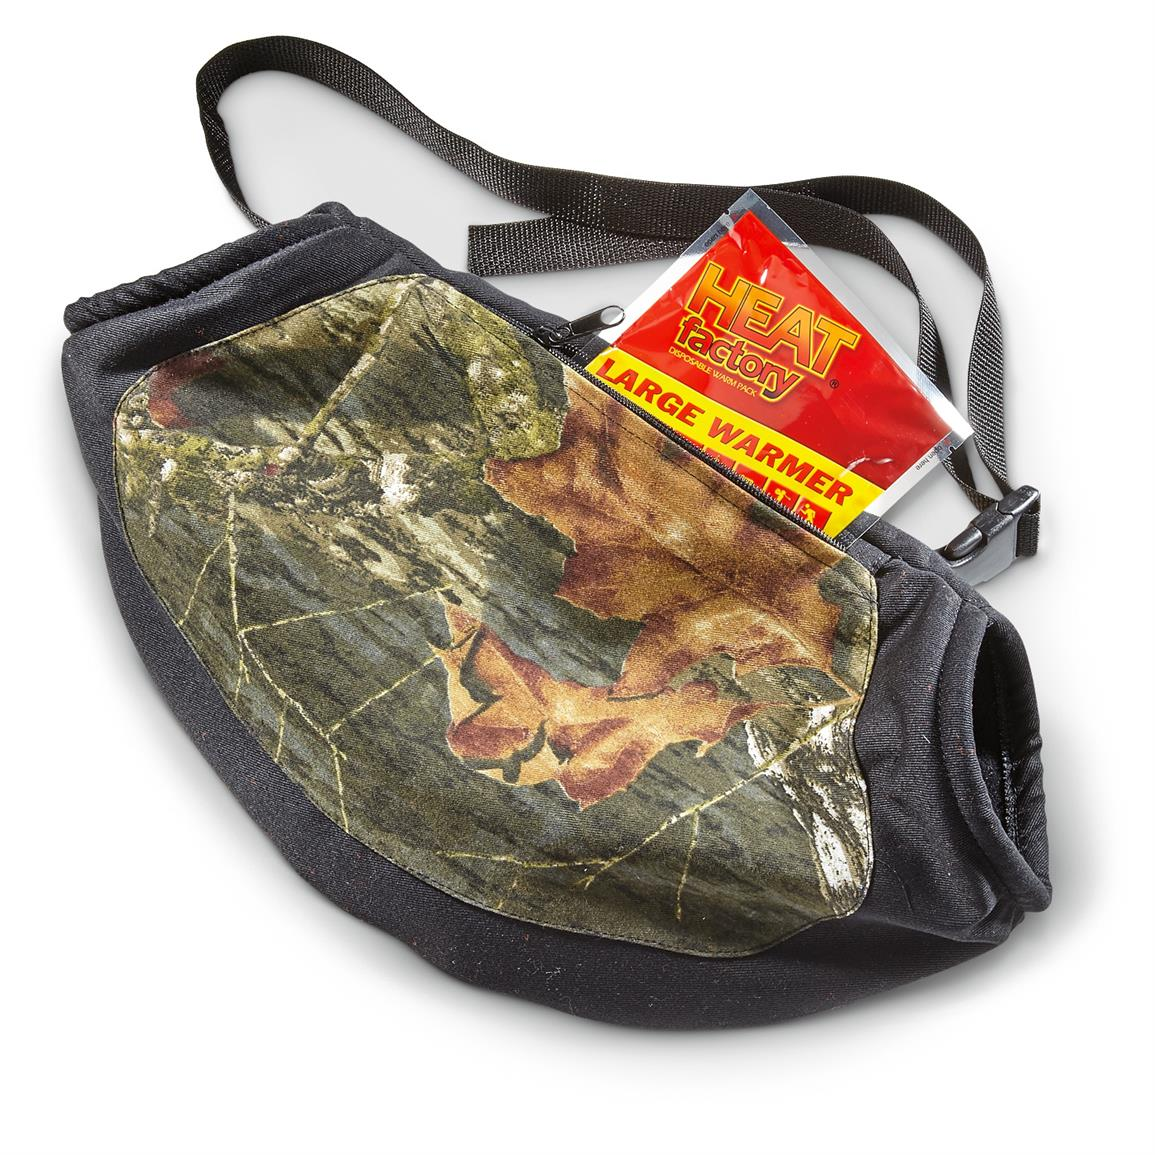 Front zipper pocket for extra gear, or adding a warming packet